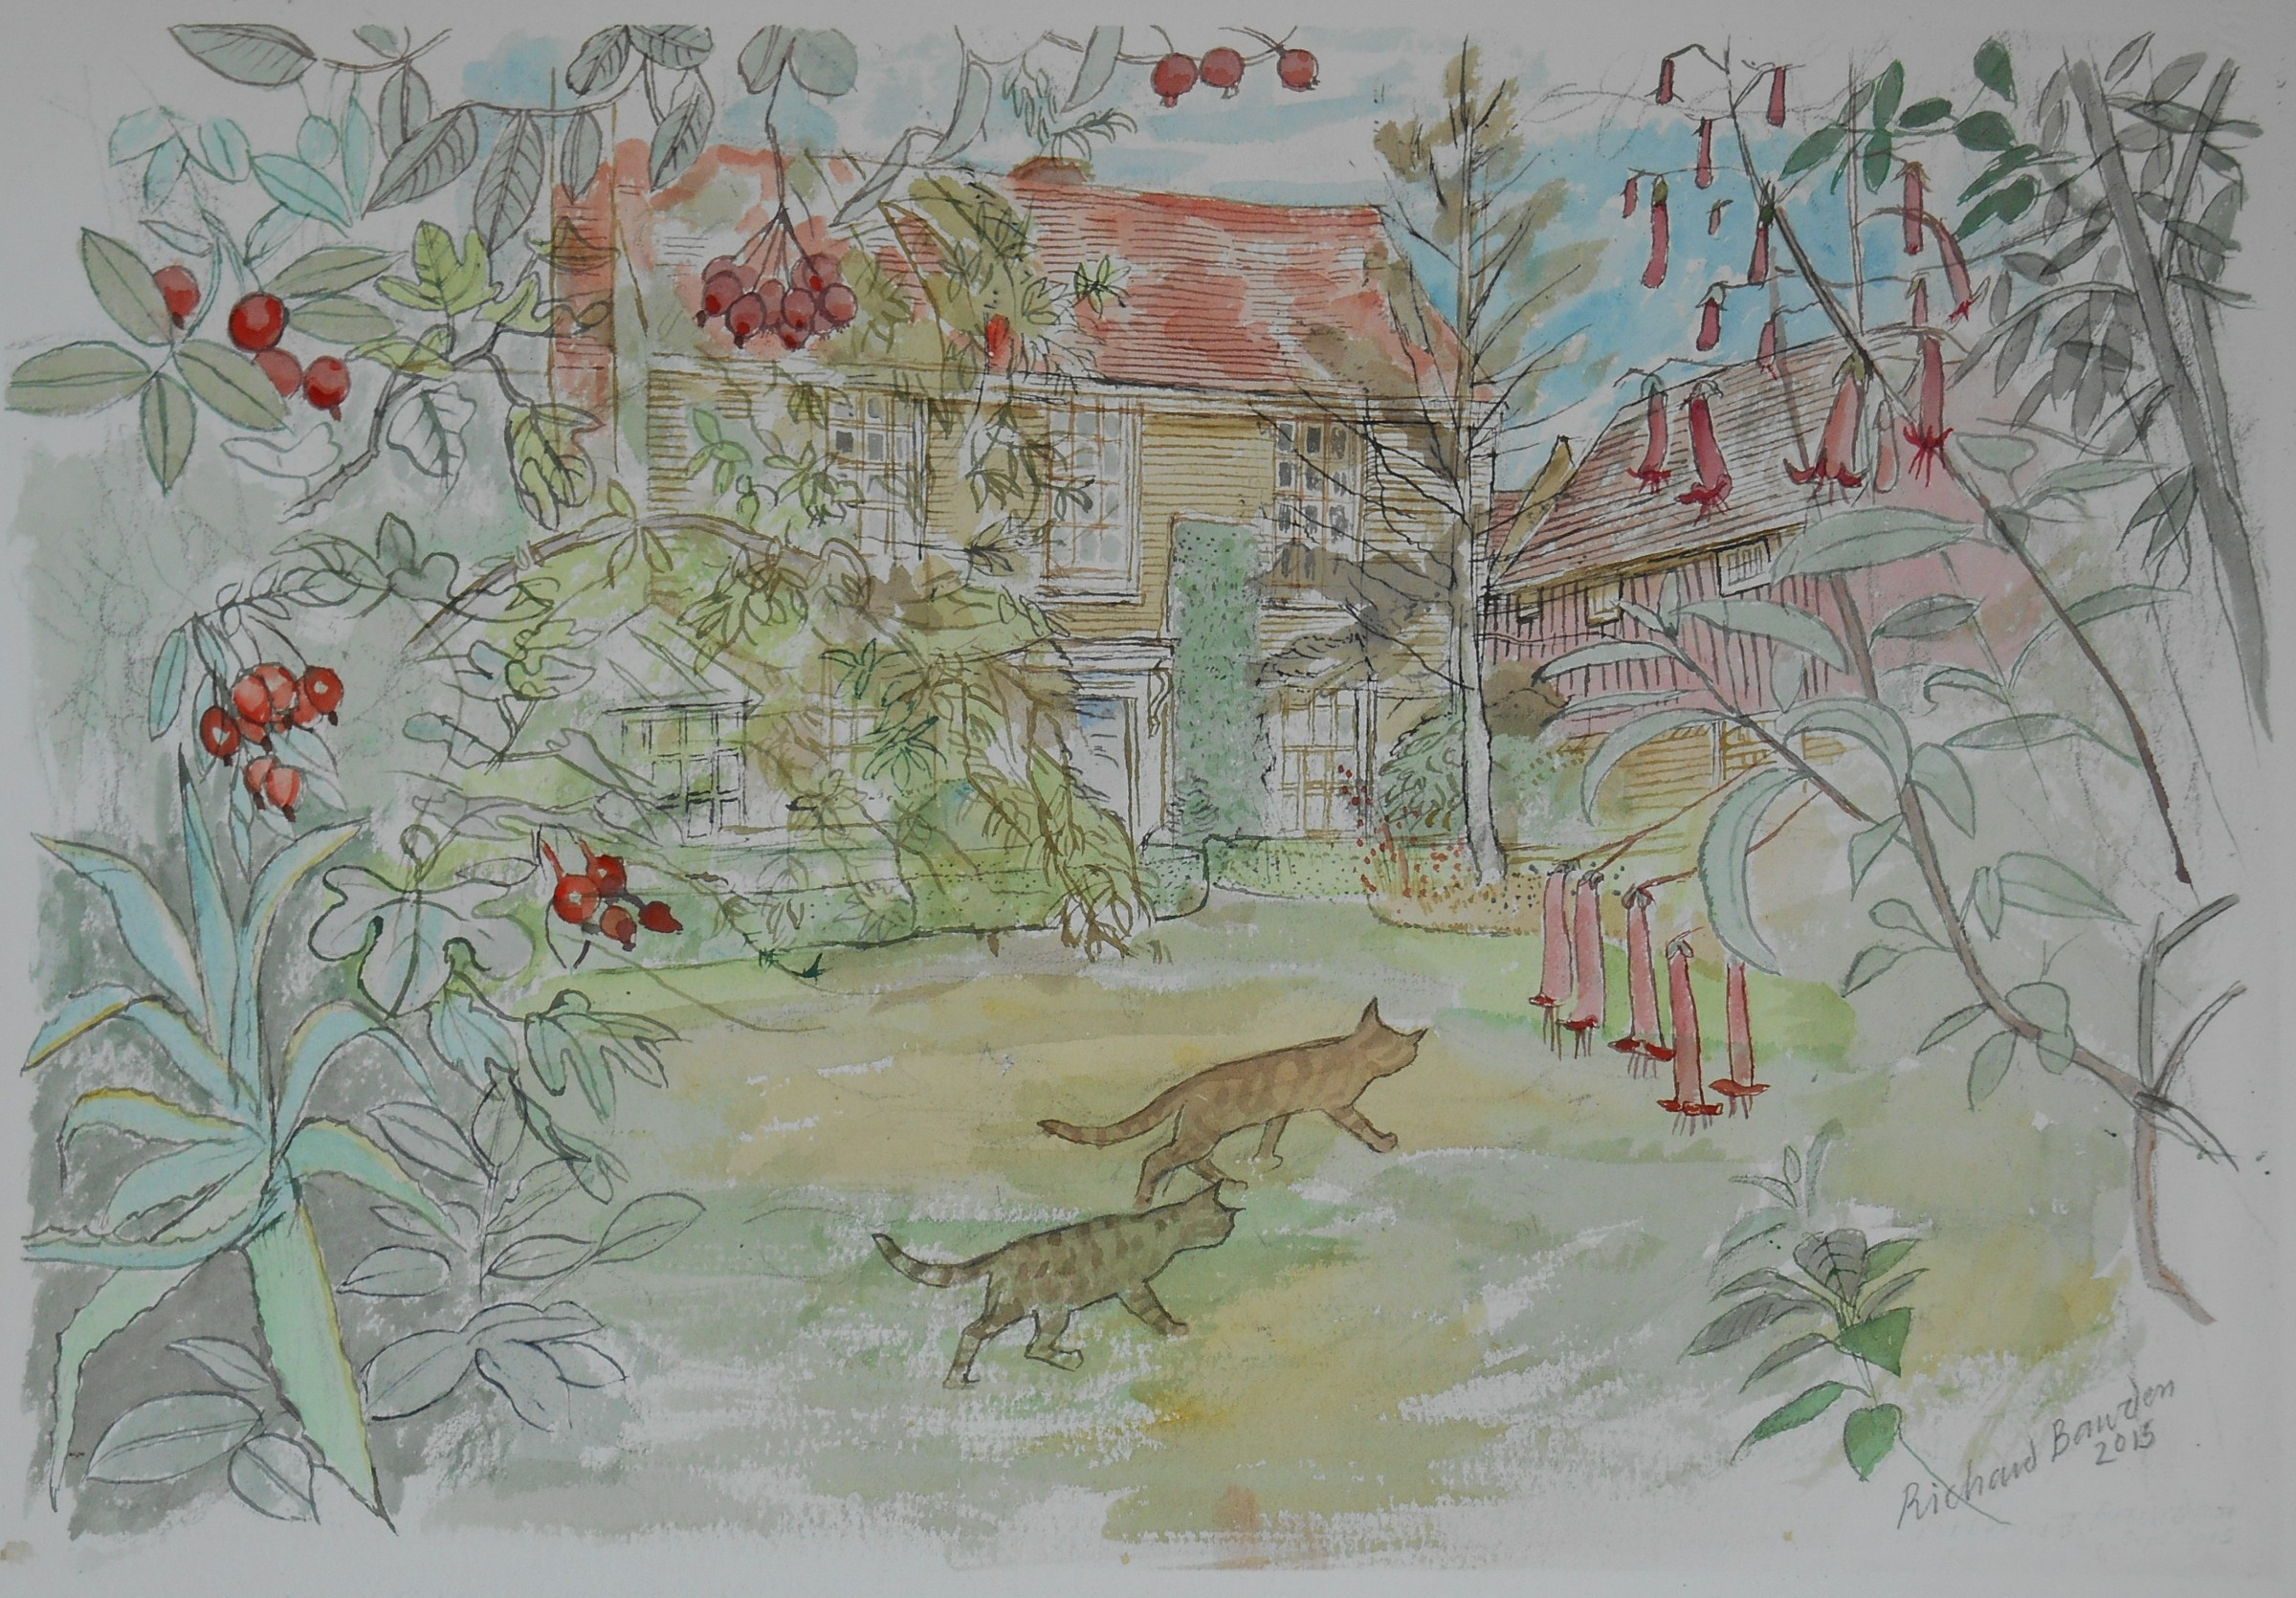 <span class=&#34;link fancybox-details-link&#34;><a href=&#34;/artists/38-richard-bawden/works/9464-richard-bawden-off-we-go/&#34;>View Detail Page</a></span><div class=&#34;artist&#34;><span class=&#34;artist&#34;><strong>Richard Bawden</strong></span></div>